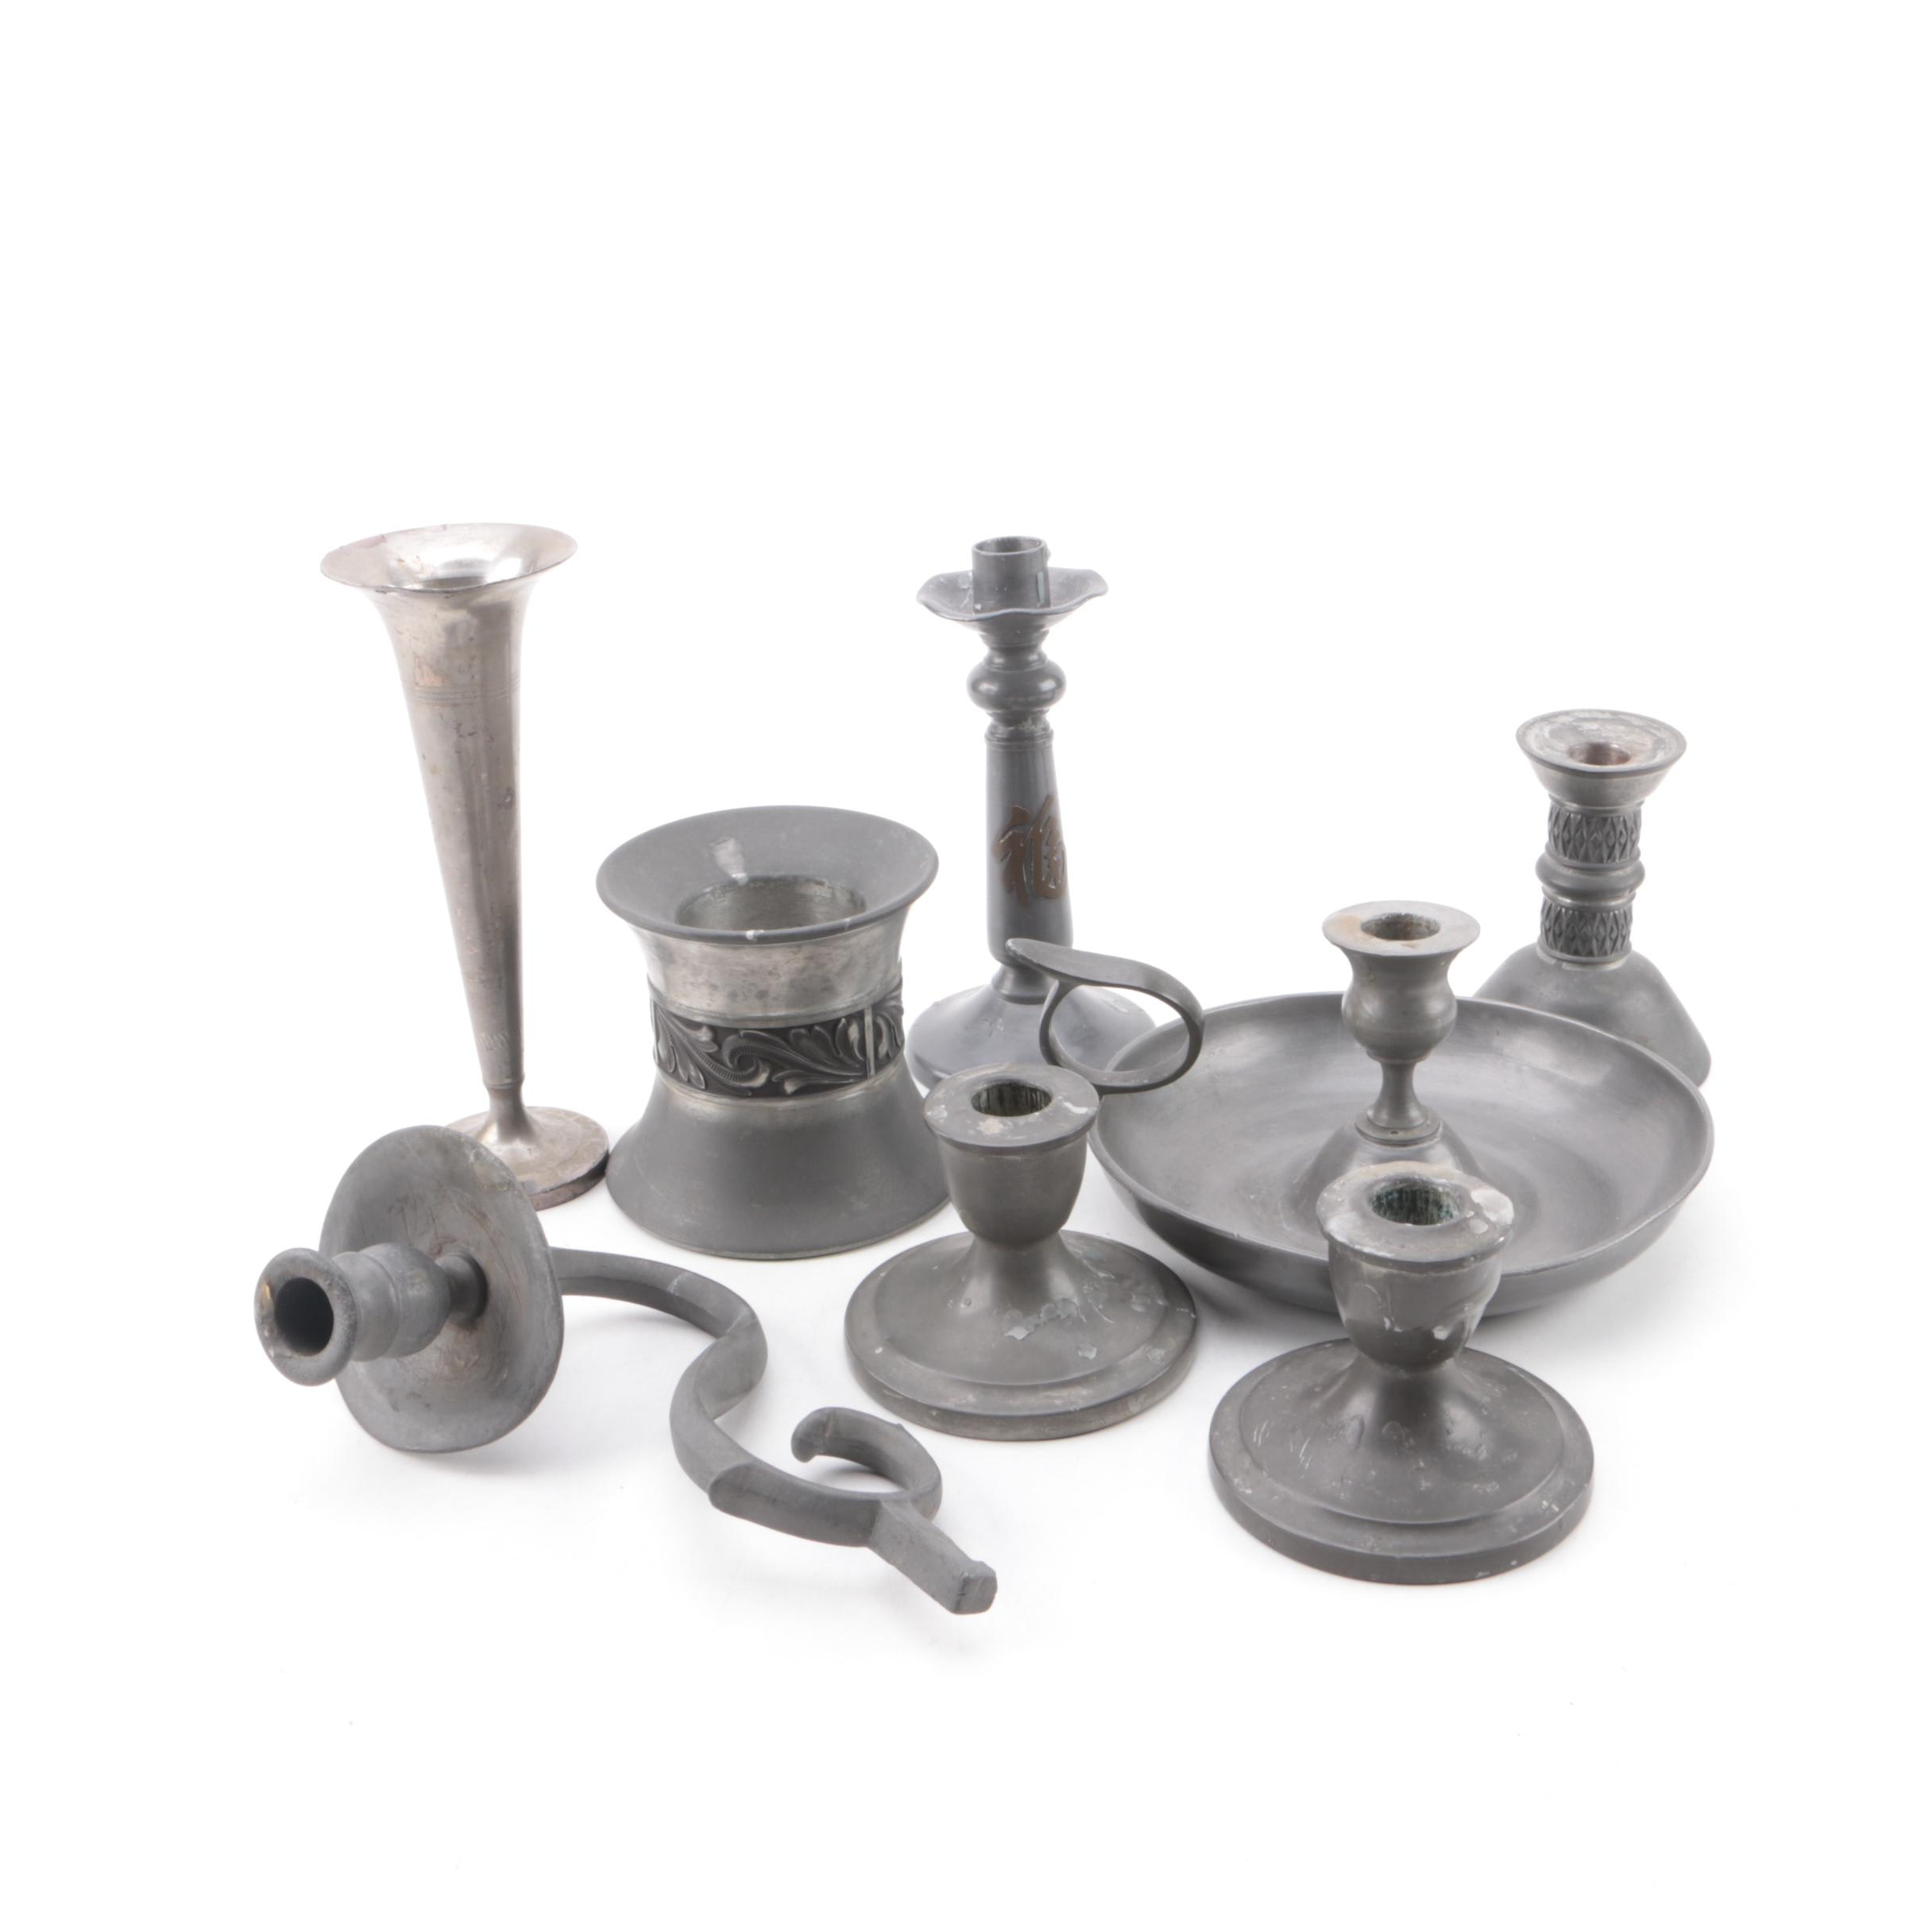 Pewter Candlestick Holders and Vase including Peltro and Real Gotham